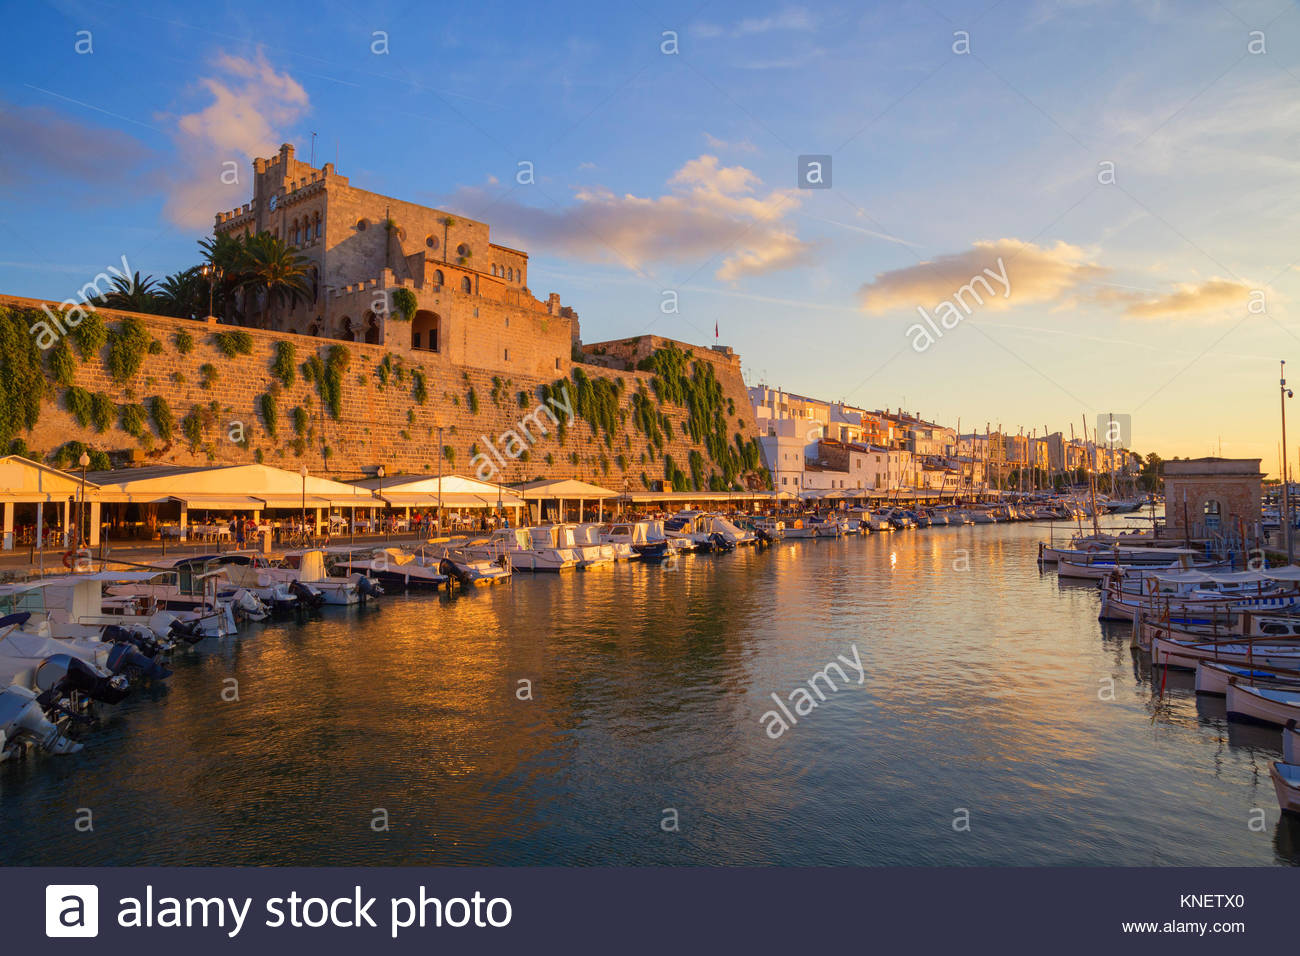 View of historic harbour waterfront and town hall, Ciutadella, Menorca, Balearic Islands, Spain - Stock Image